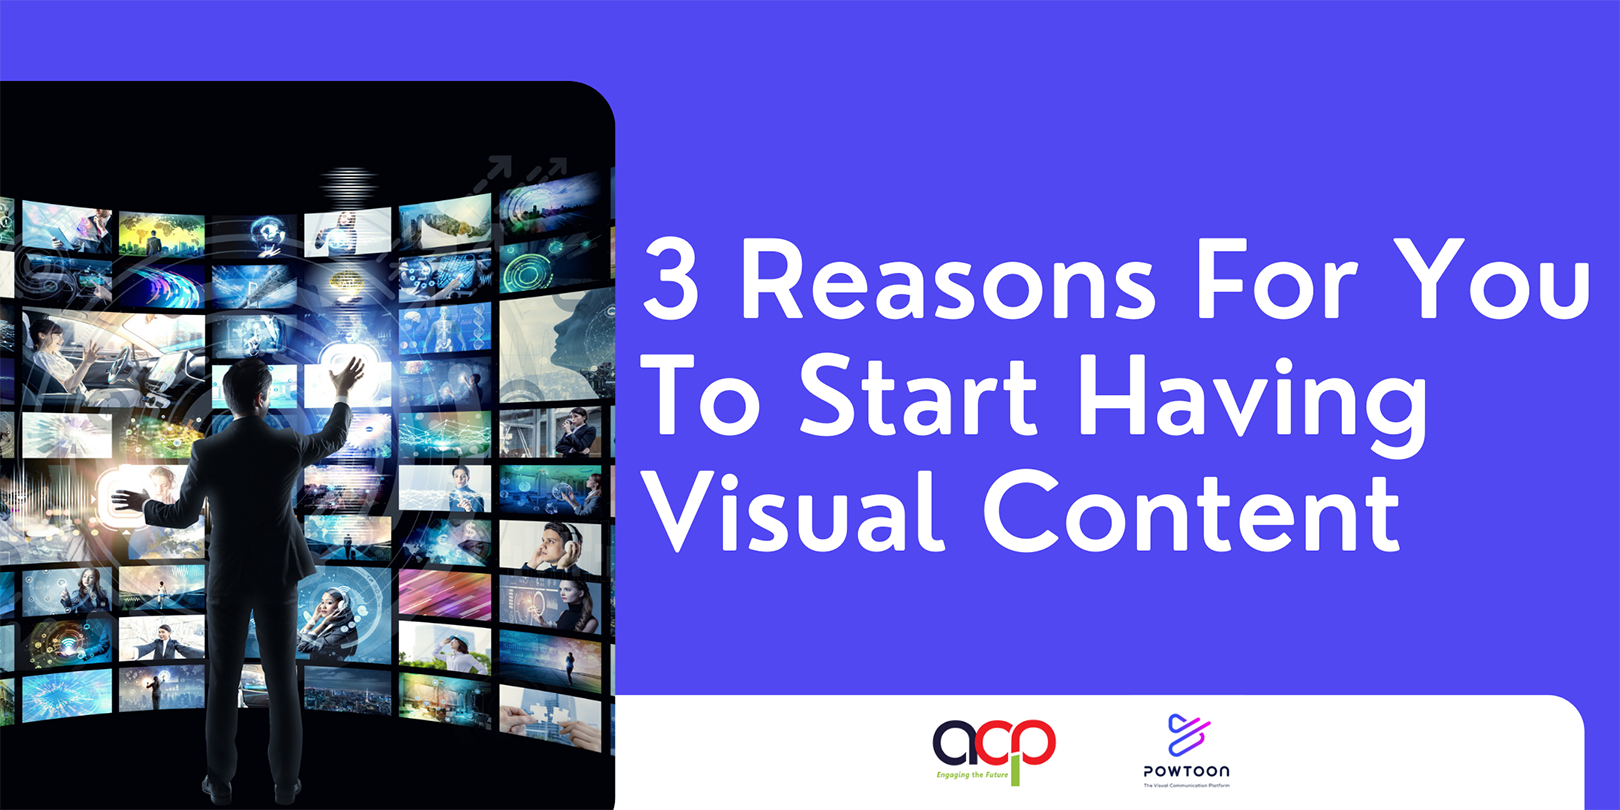 3 Reasons For You To Start Having Visual Content